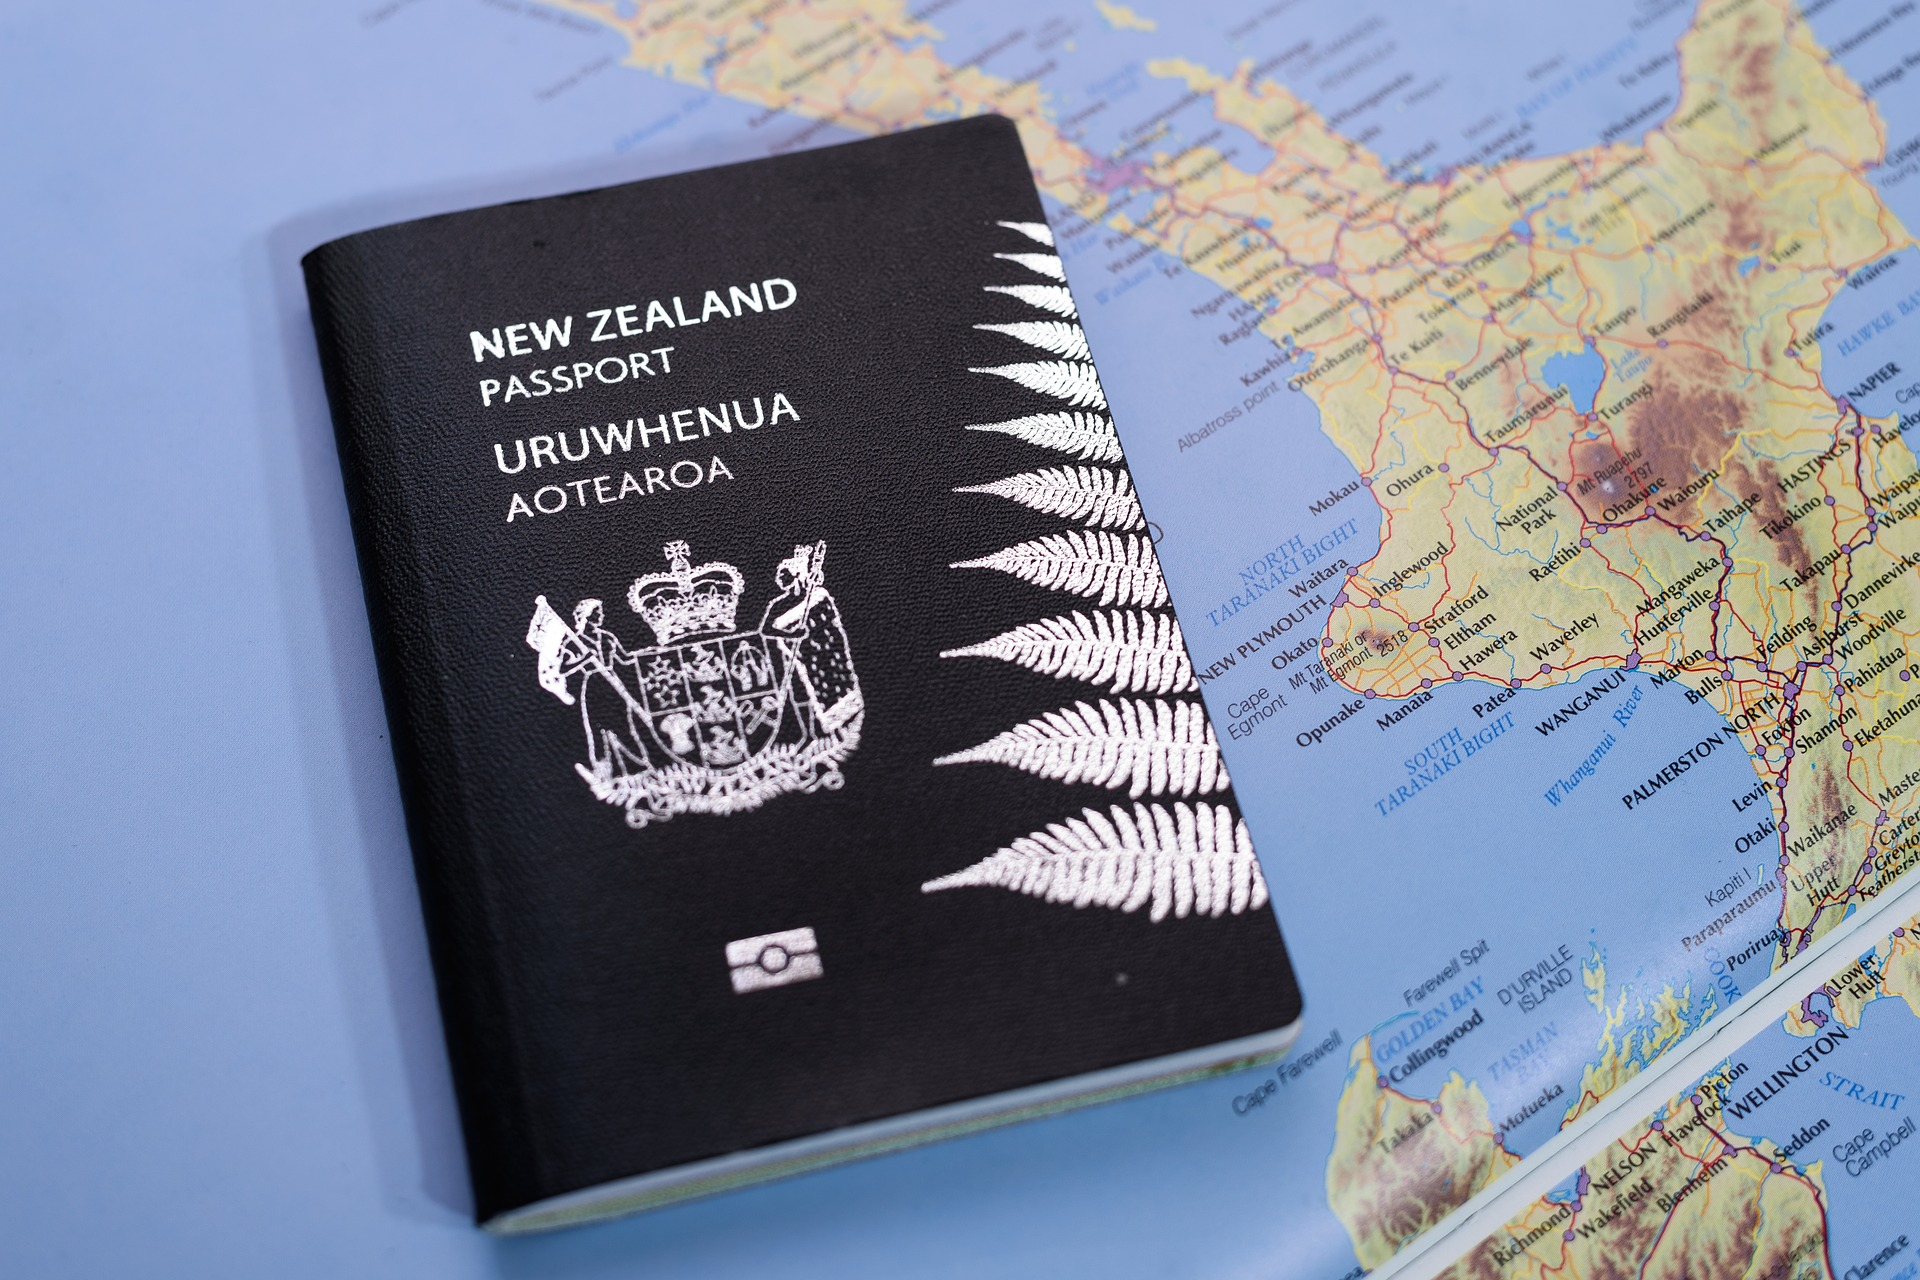 New Zealand changes its entrance requirements